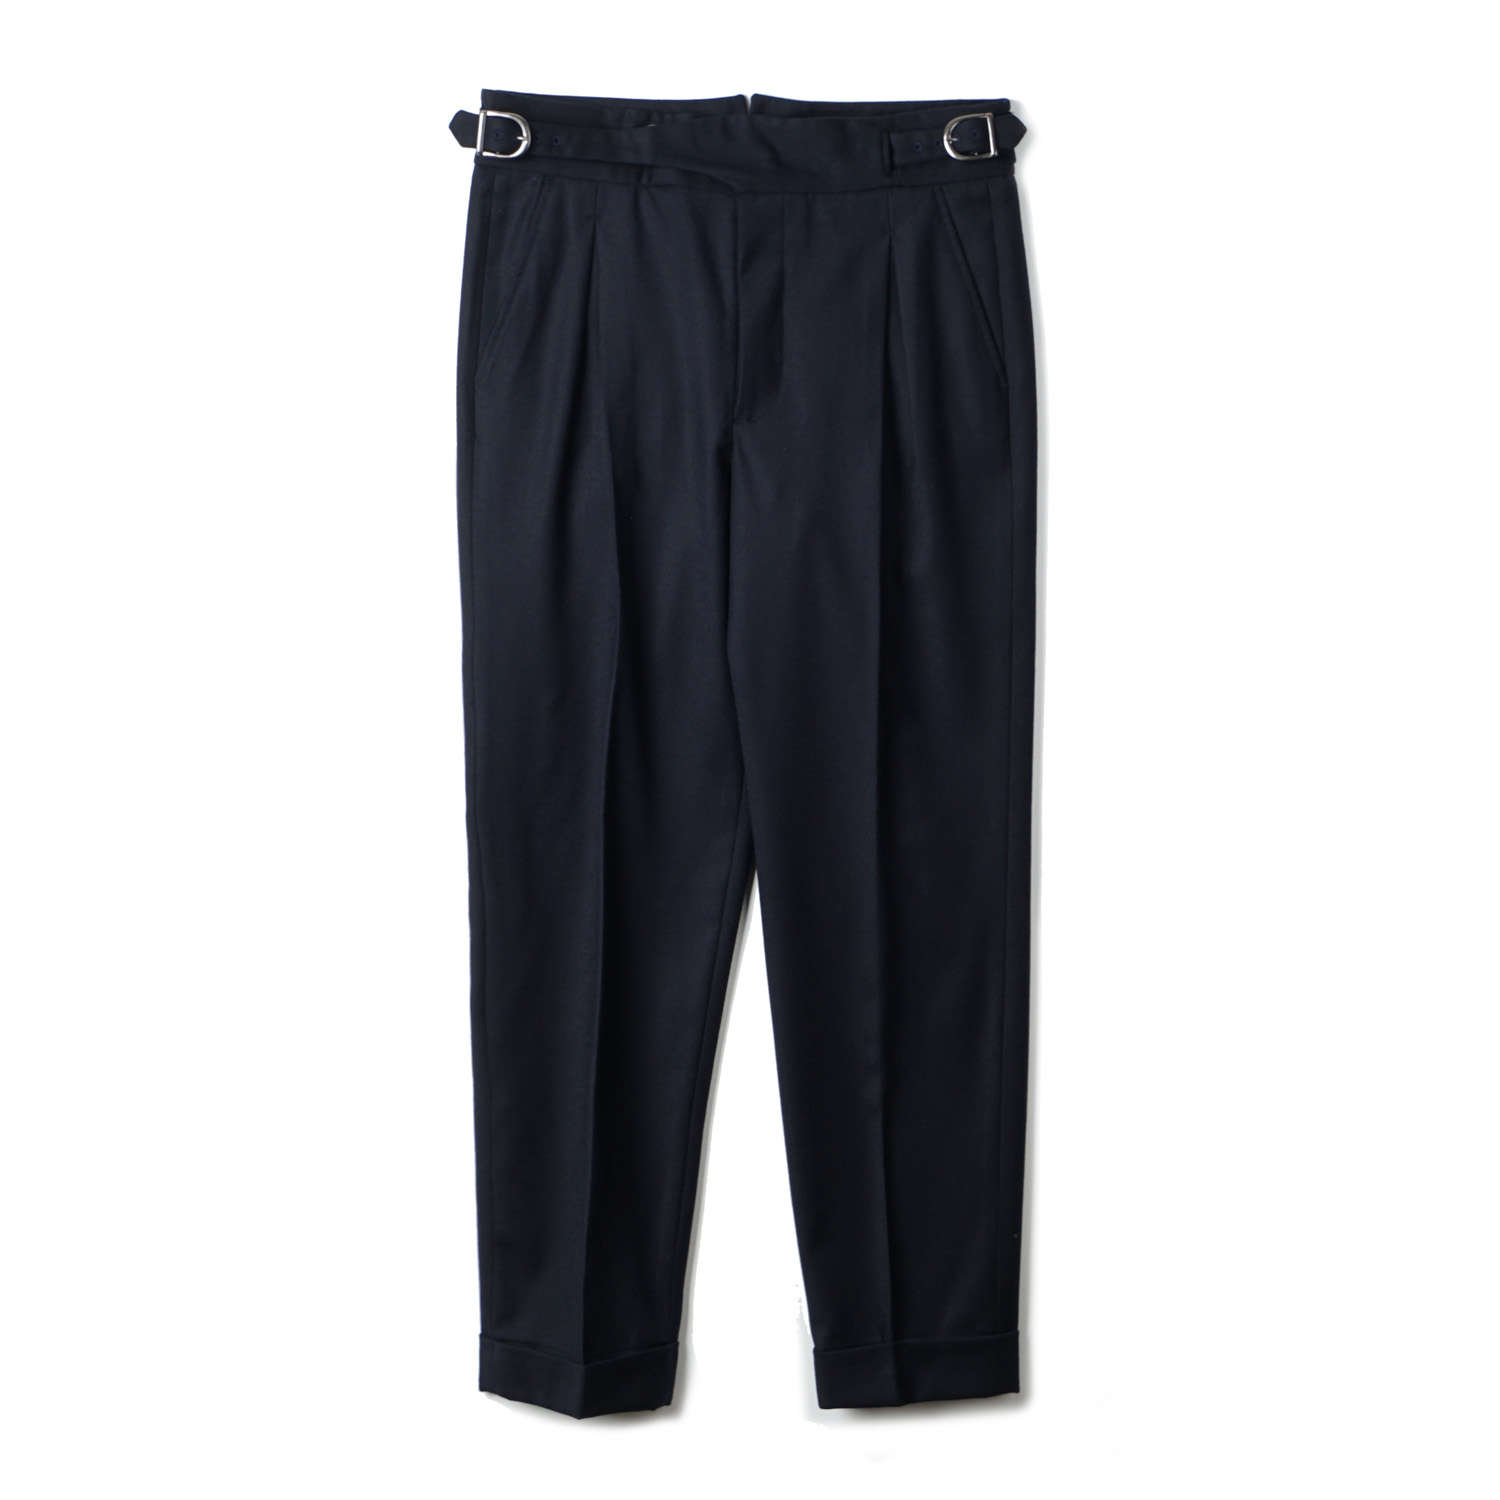 TJA Wool Gurkha Pants - Navy